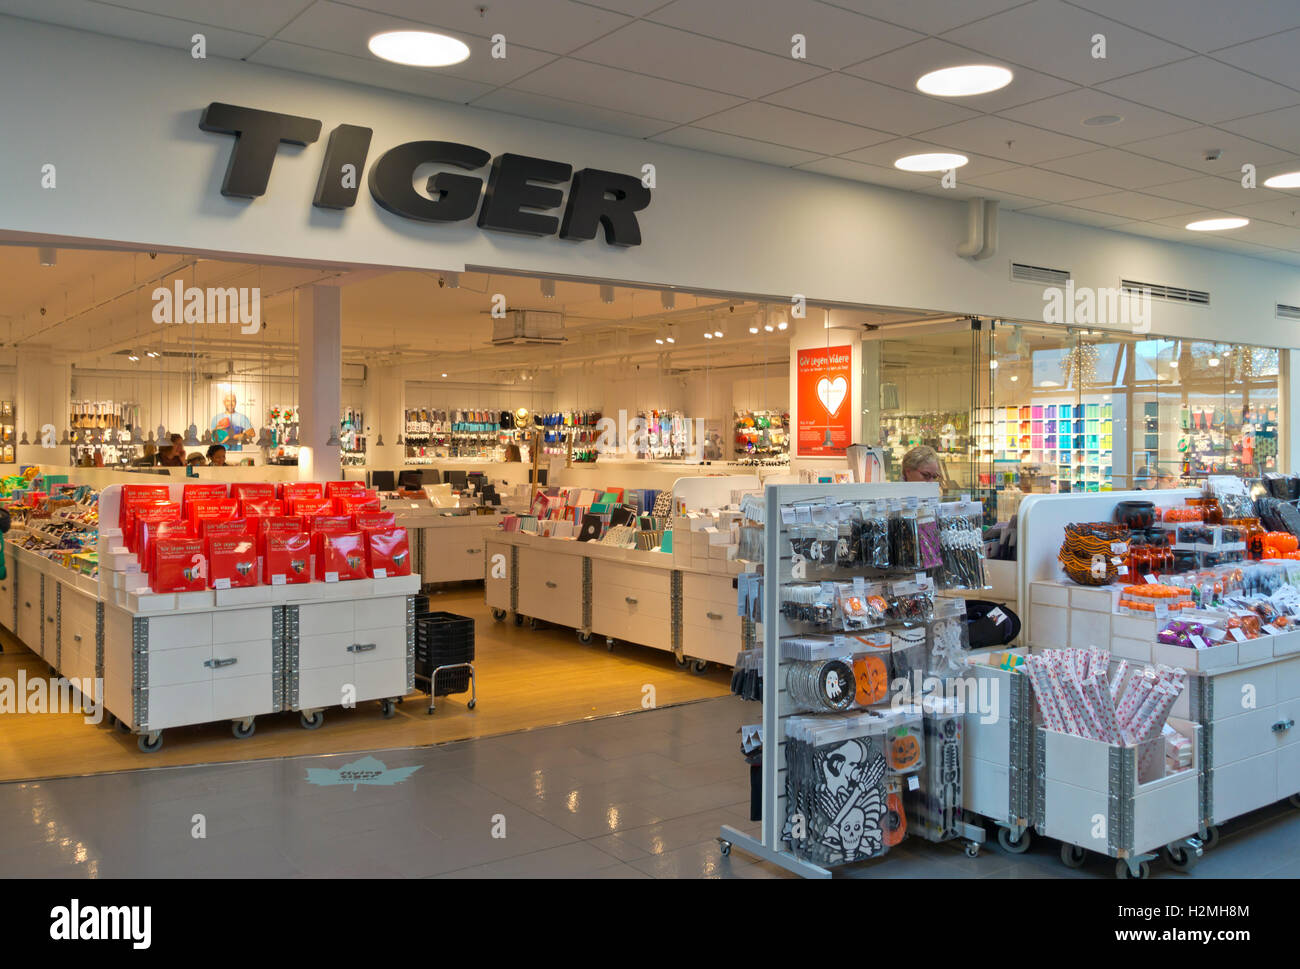 Flying Tiger Shop Tiger Shop Danish Variety Store Or Price Point Retailer